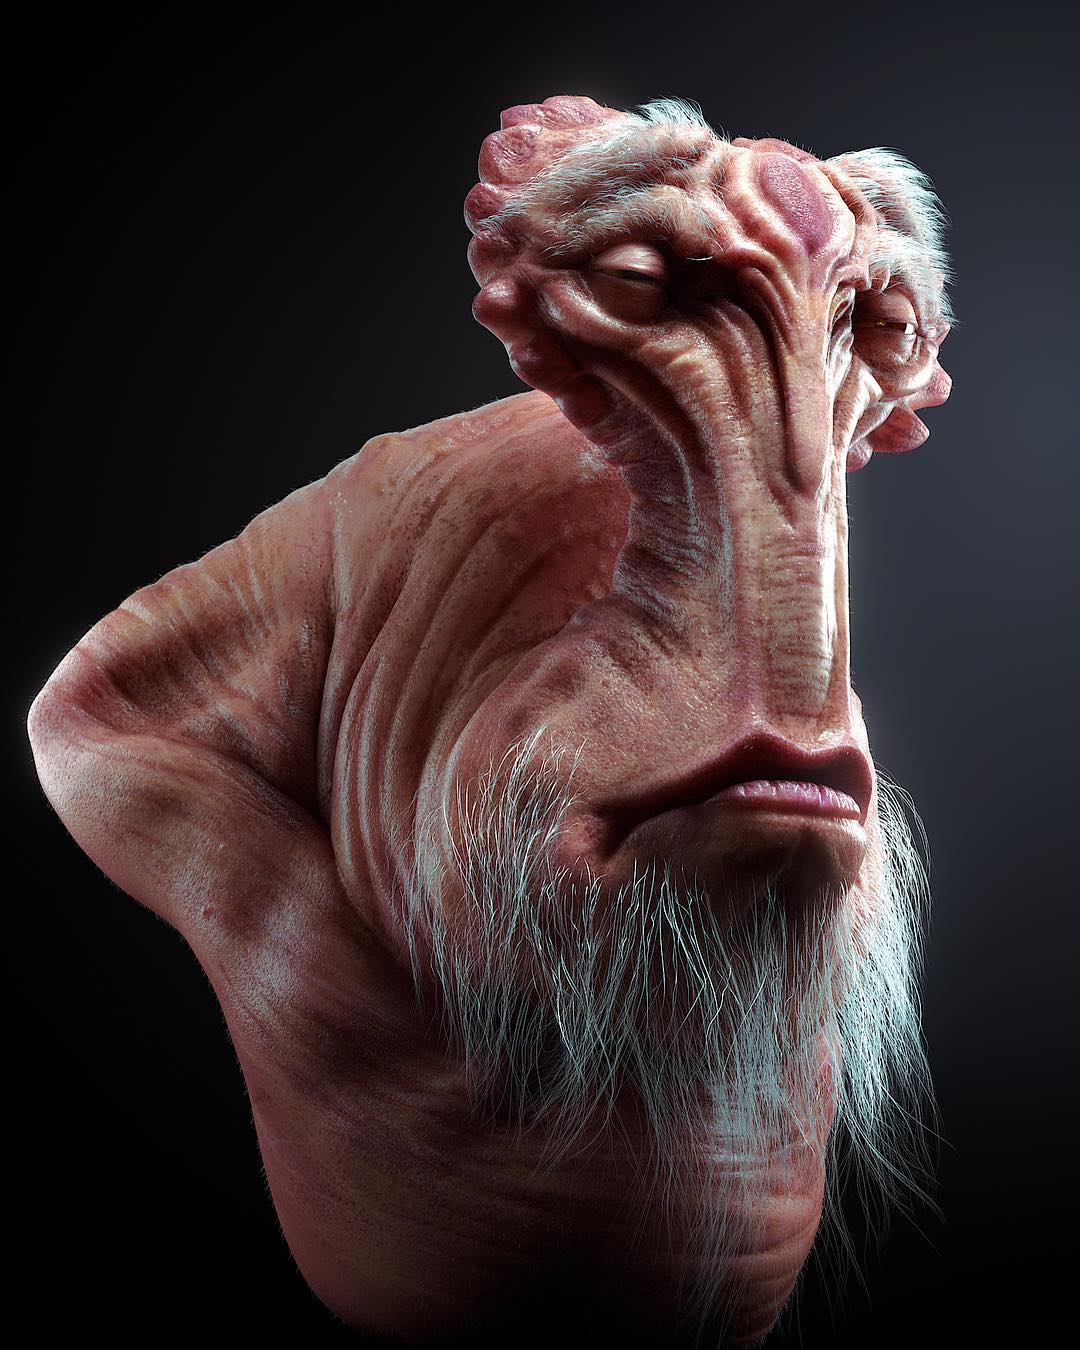 Another Star Wars alien sculpt study :) enjoy!